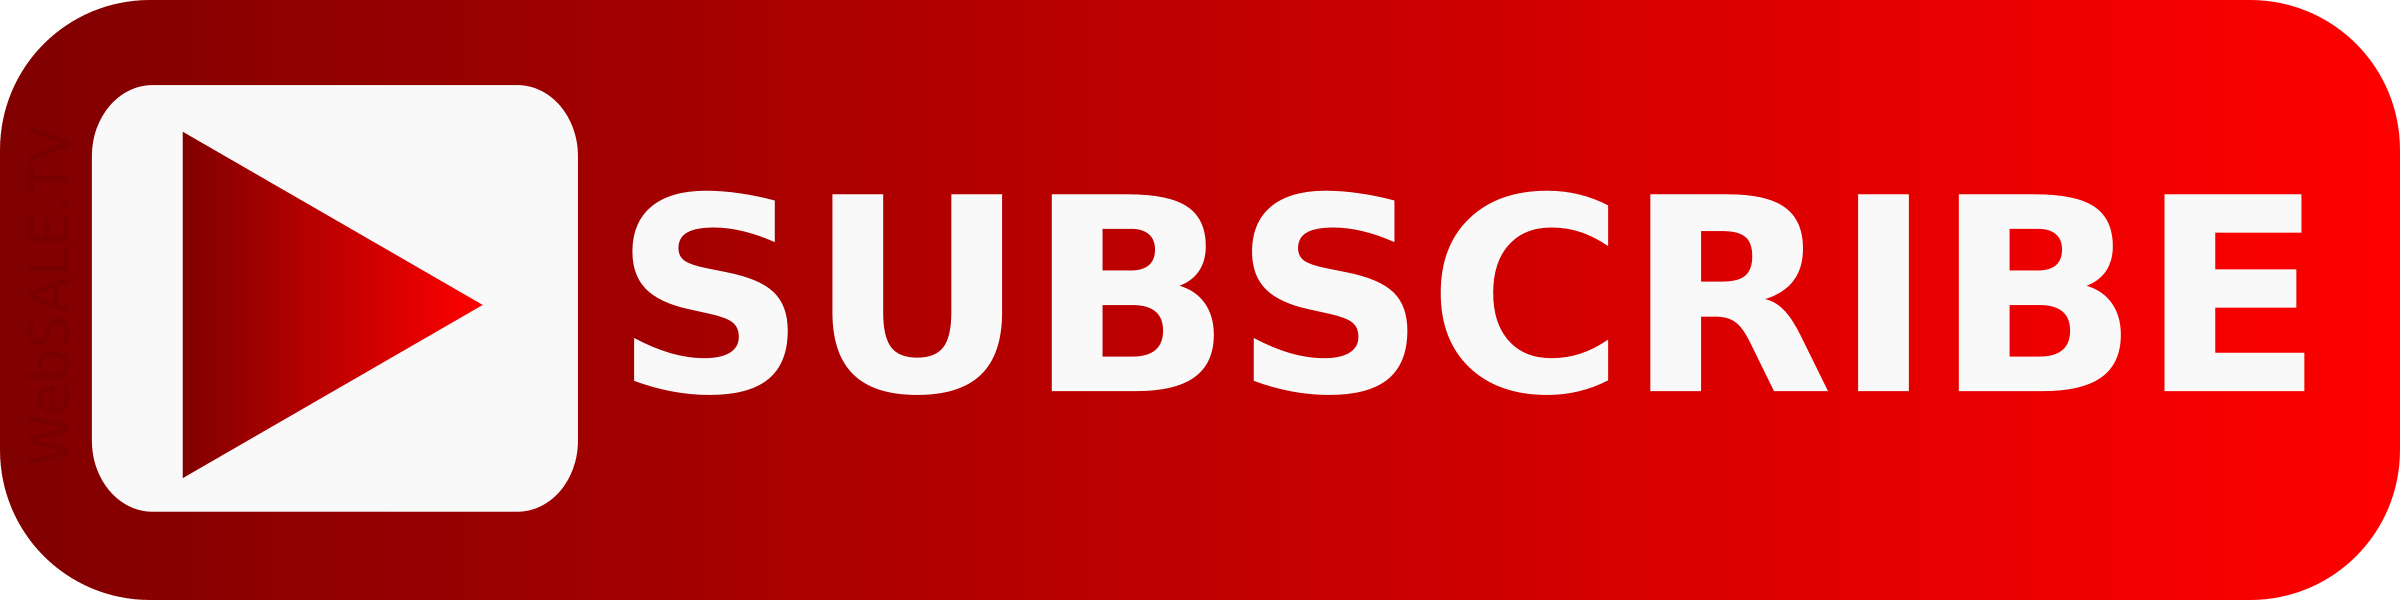 Subscribe Youtube Large Button transparent PNG.